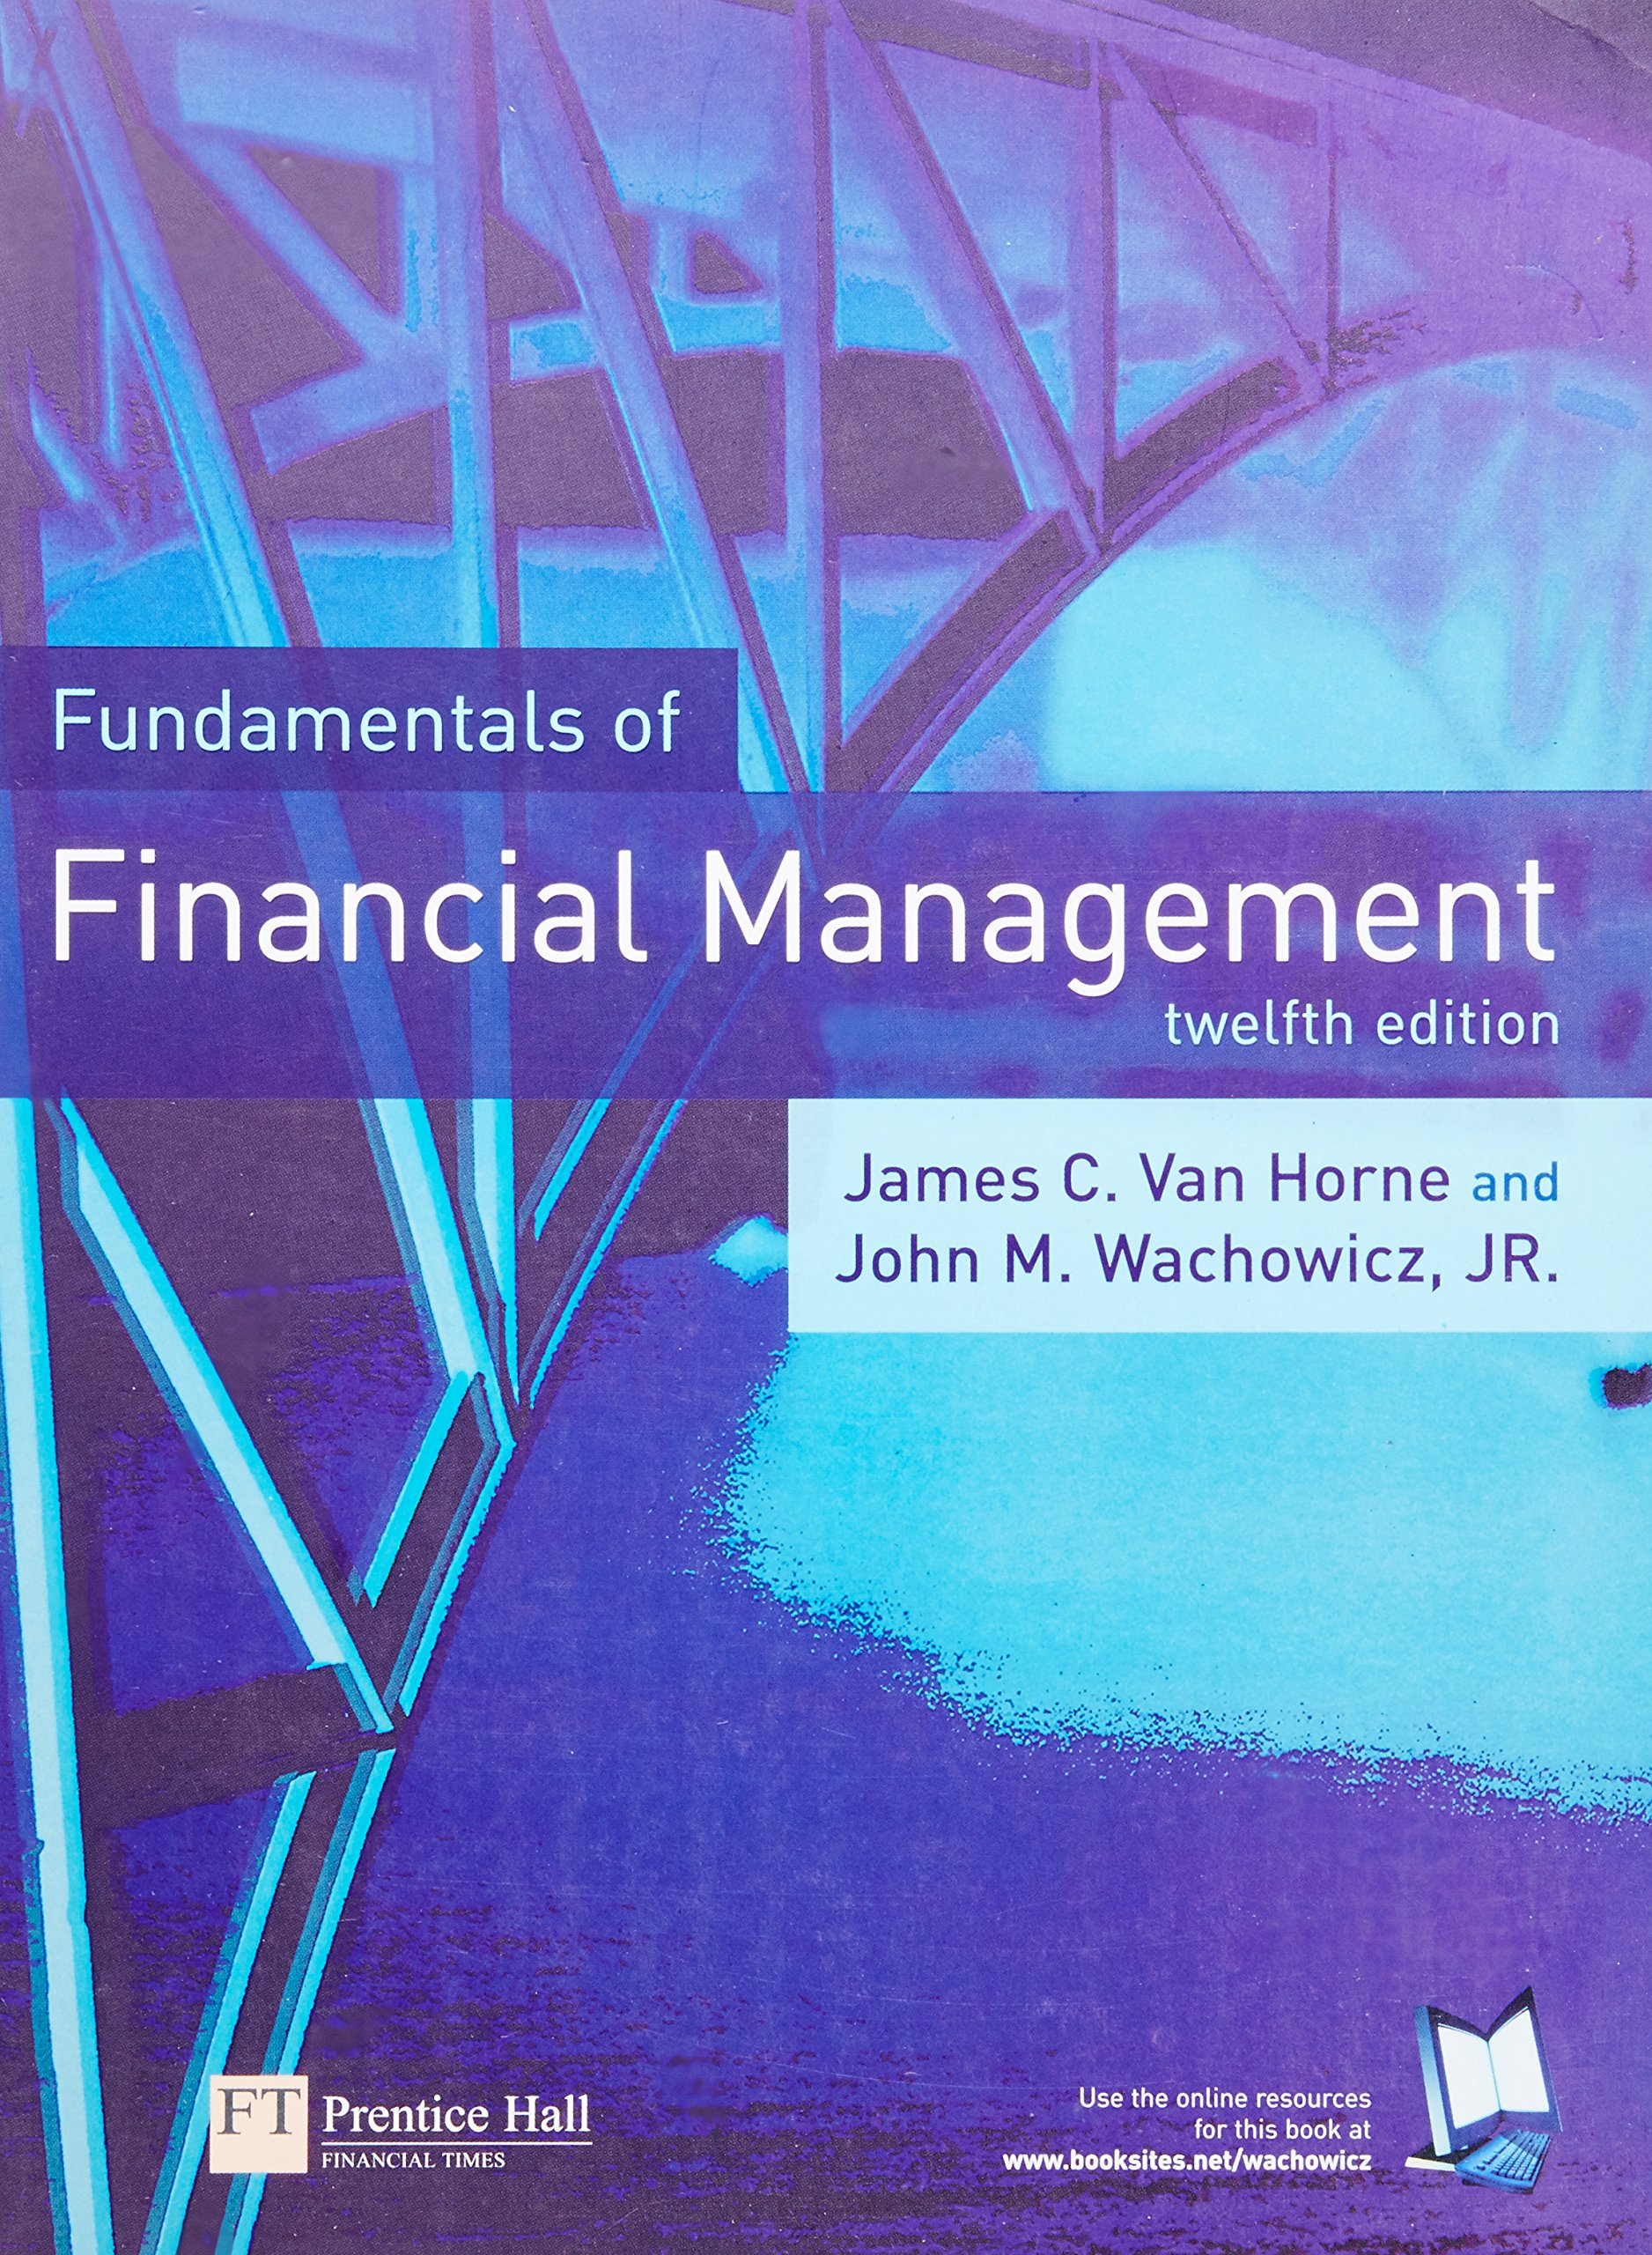 finical management